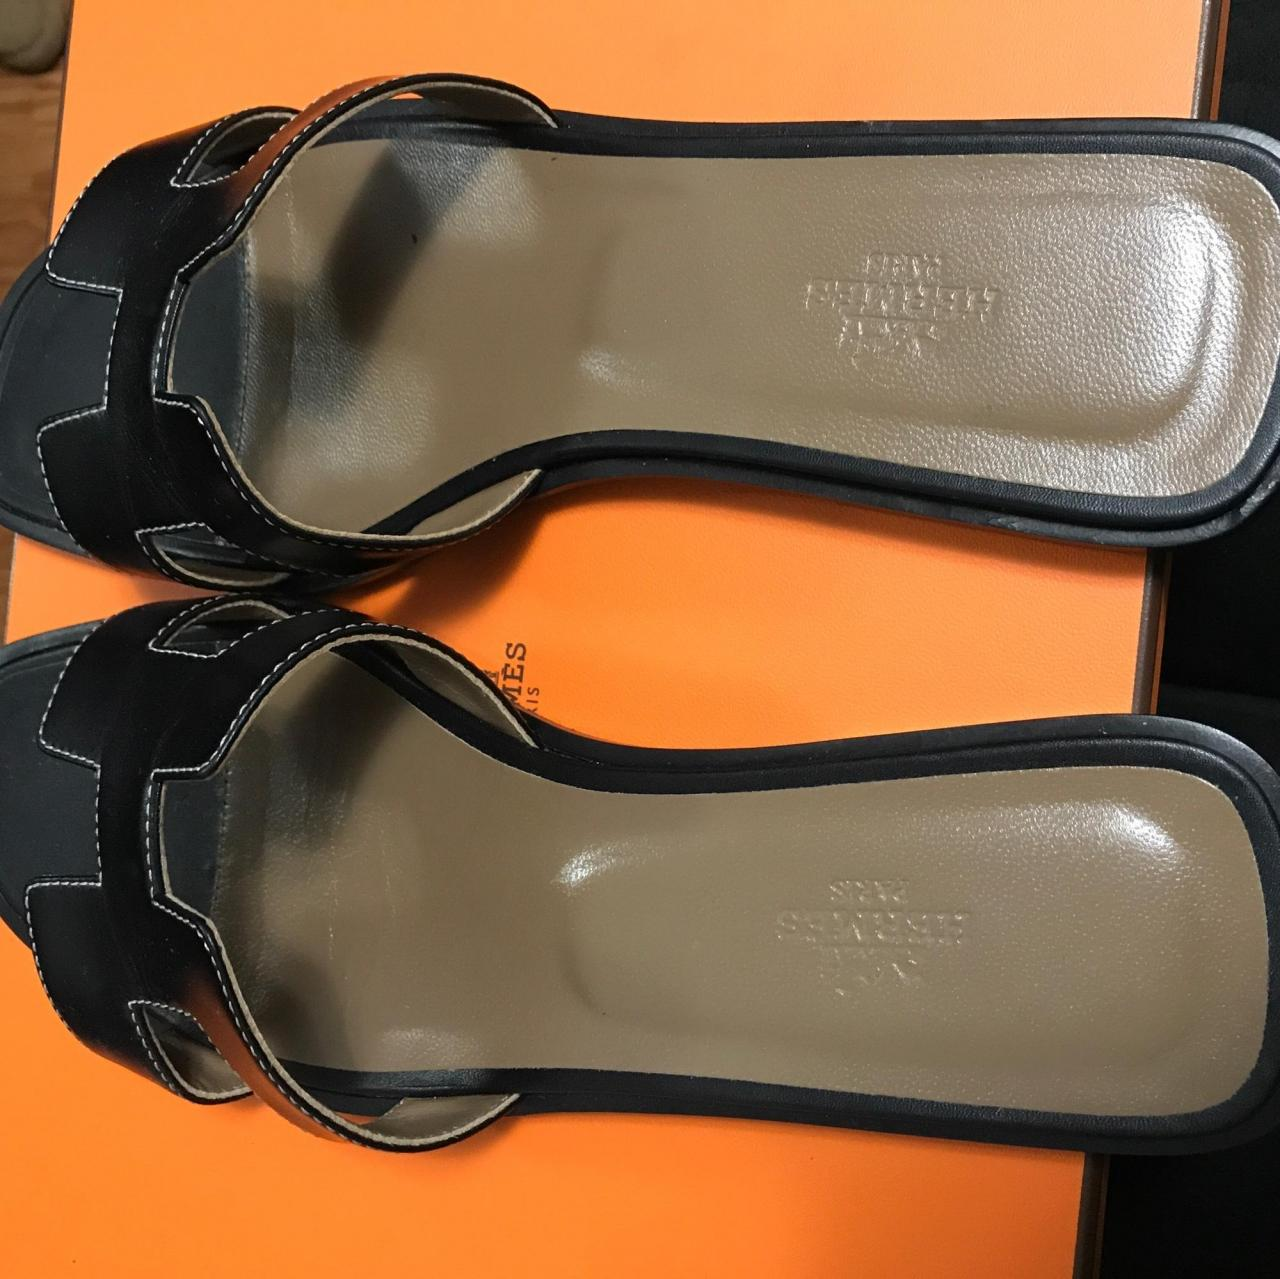 a26c23c37d0a ReplicaUnion Hermes New Shoes 2016 sandals and slippers are first designed  as exactly the same as authentic Hermes layout